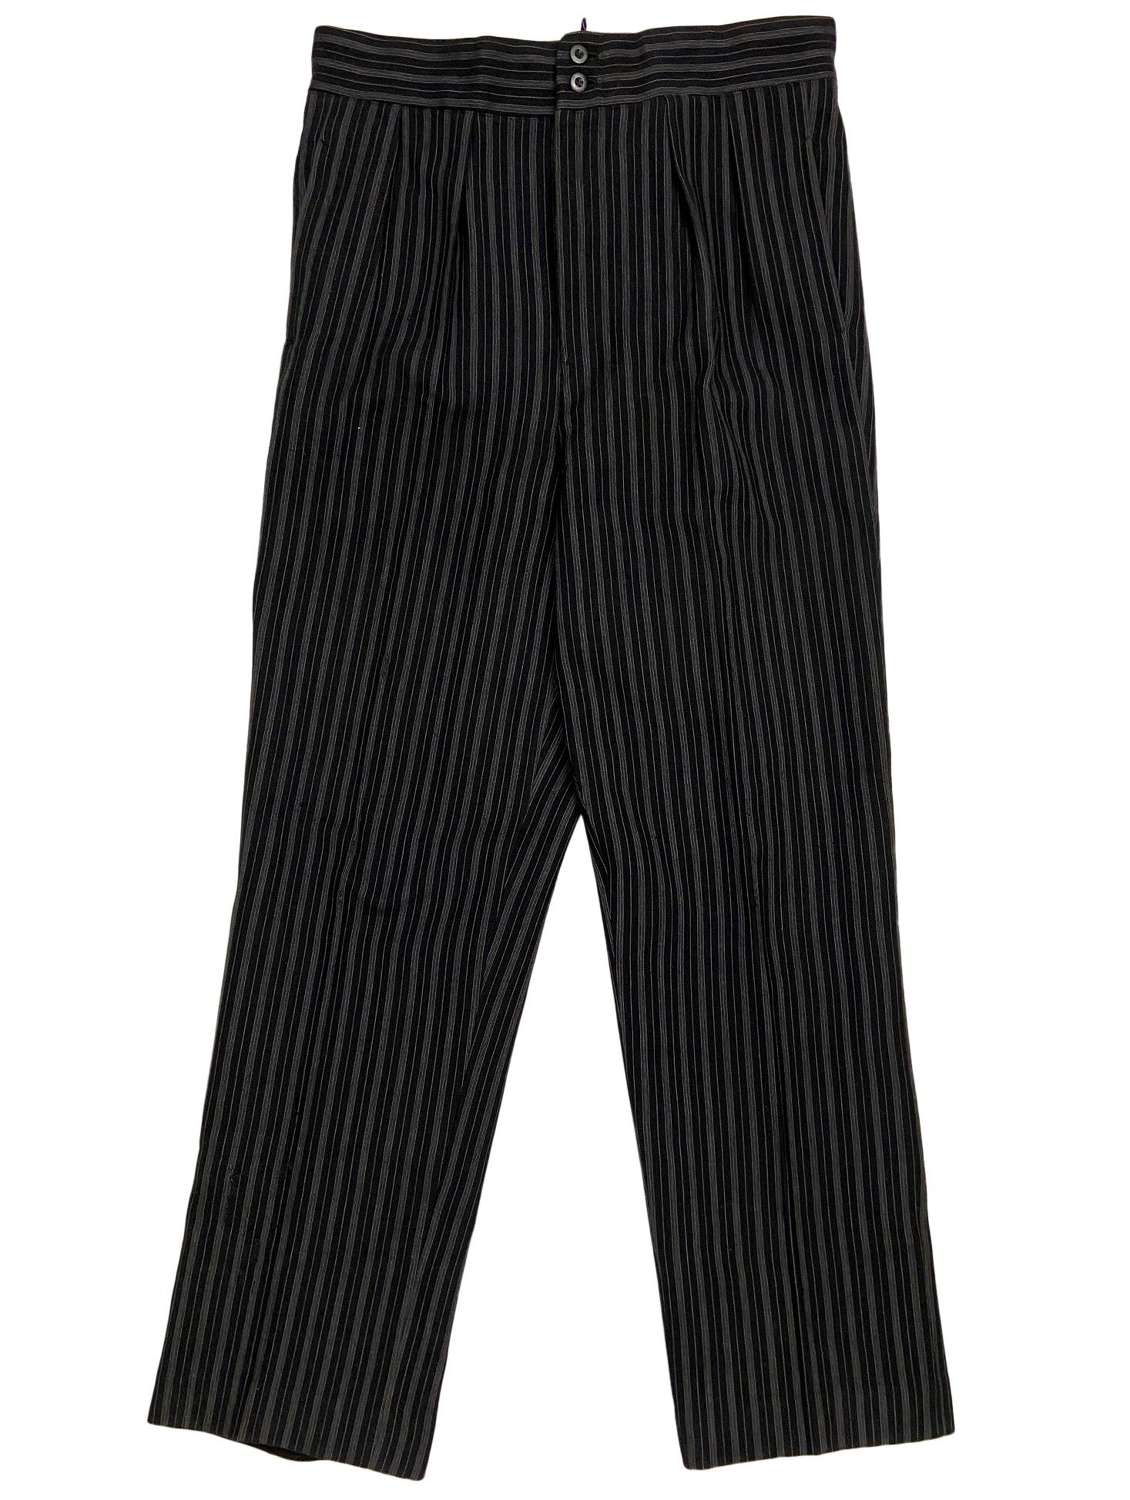 Original 1940s French Men's Striped Work Trousers